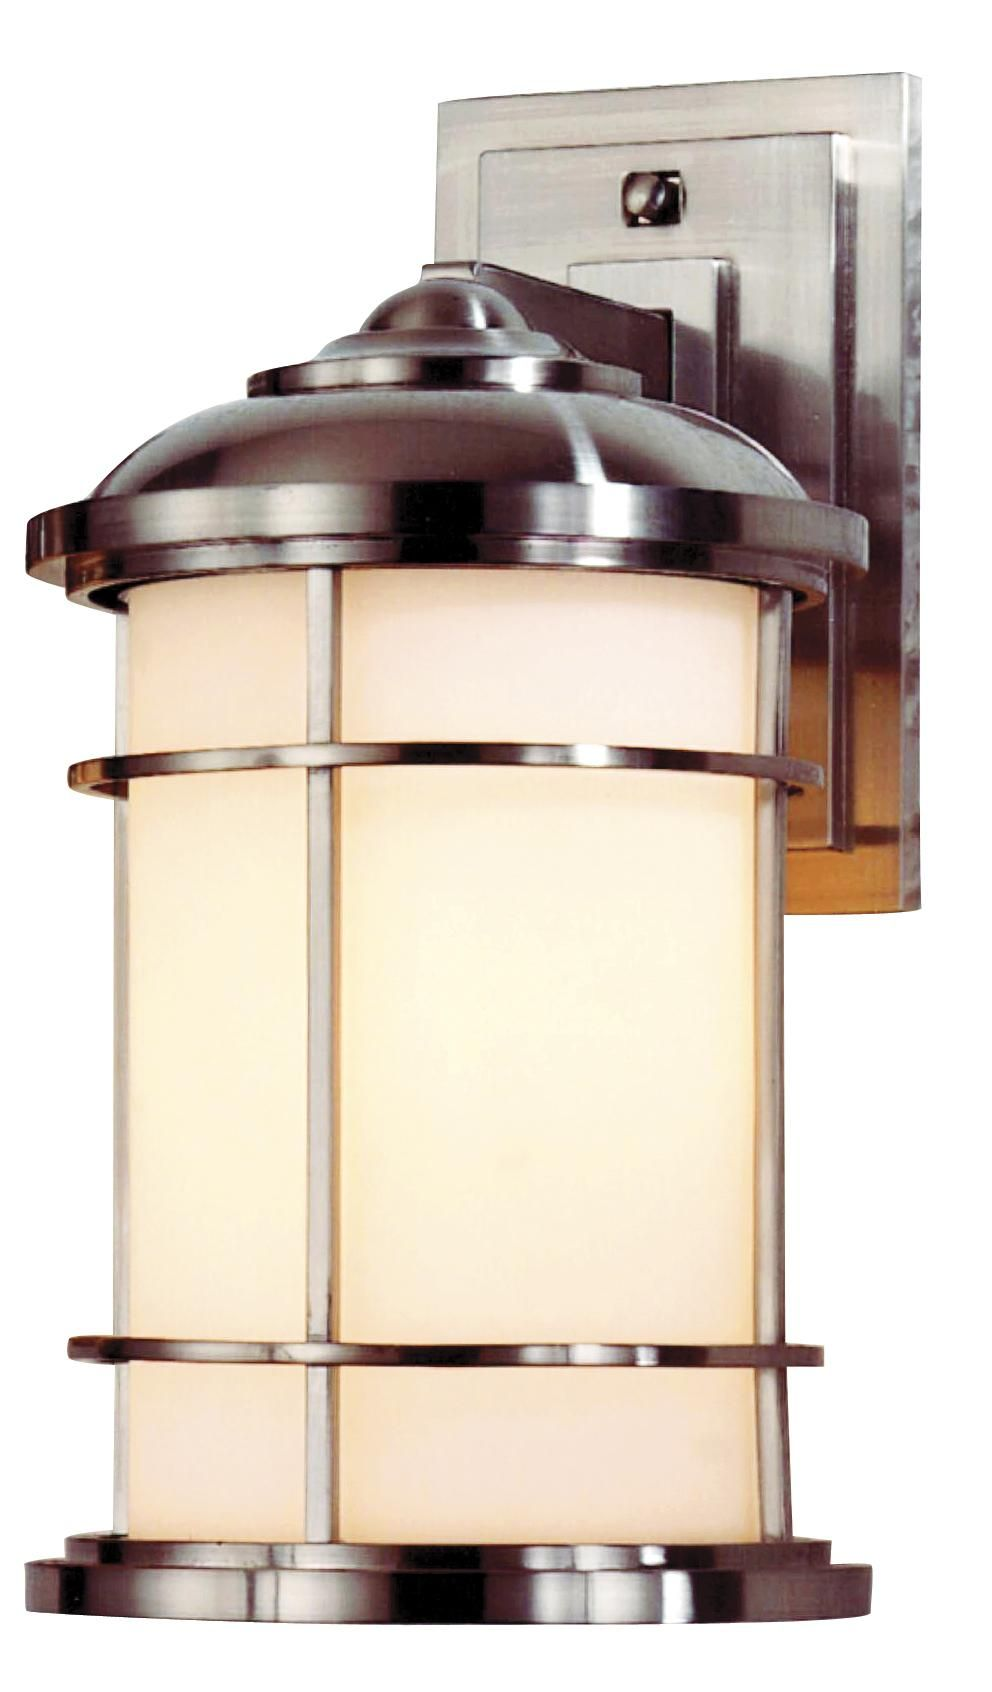 Feiss Lighthouse Collection 13 1 2 High Outdoor Wall Light 84659 Lamps Plus In 2020 Outdoor Wall Lighting Outdoor Walls House Lighting Outdoor